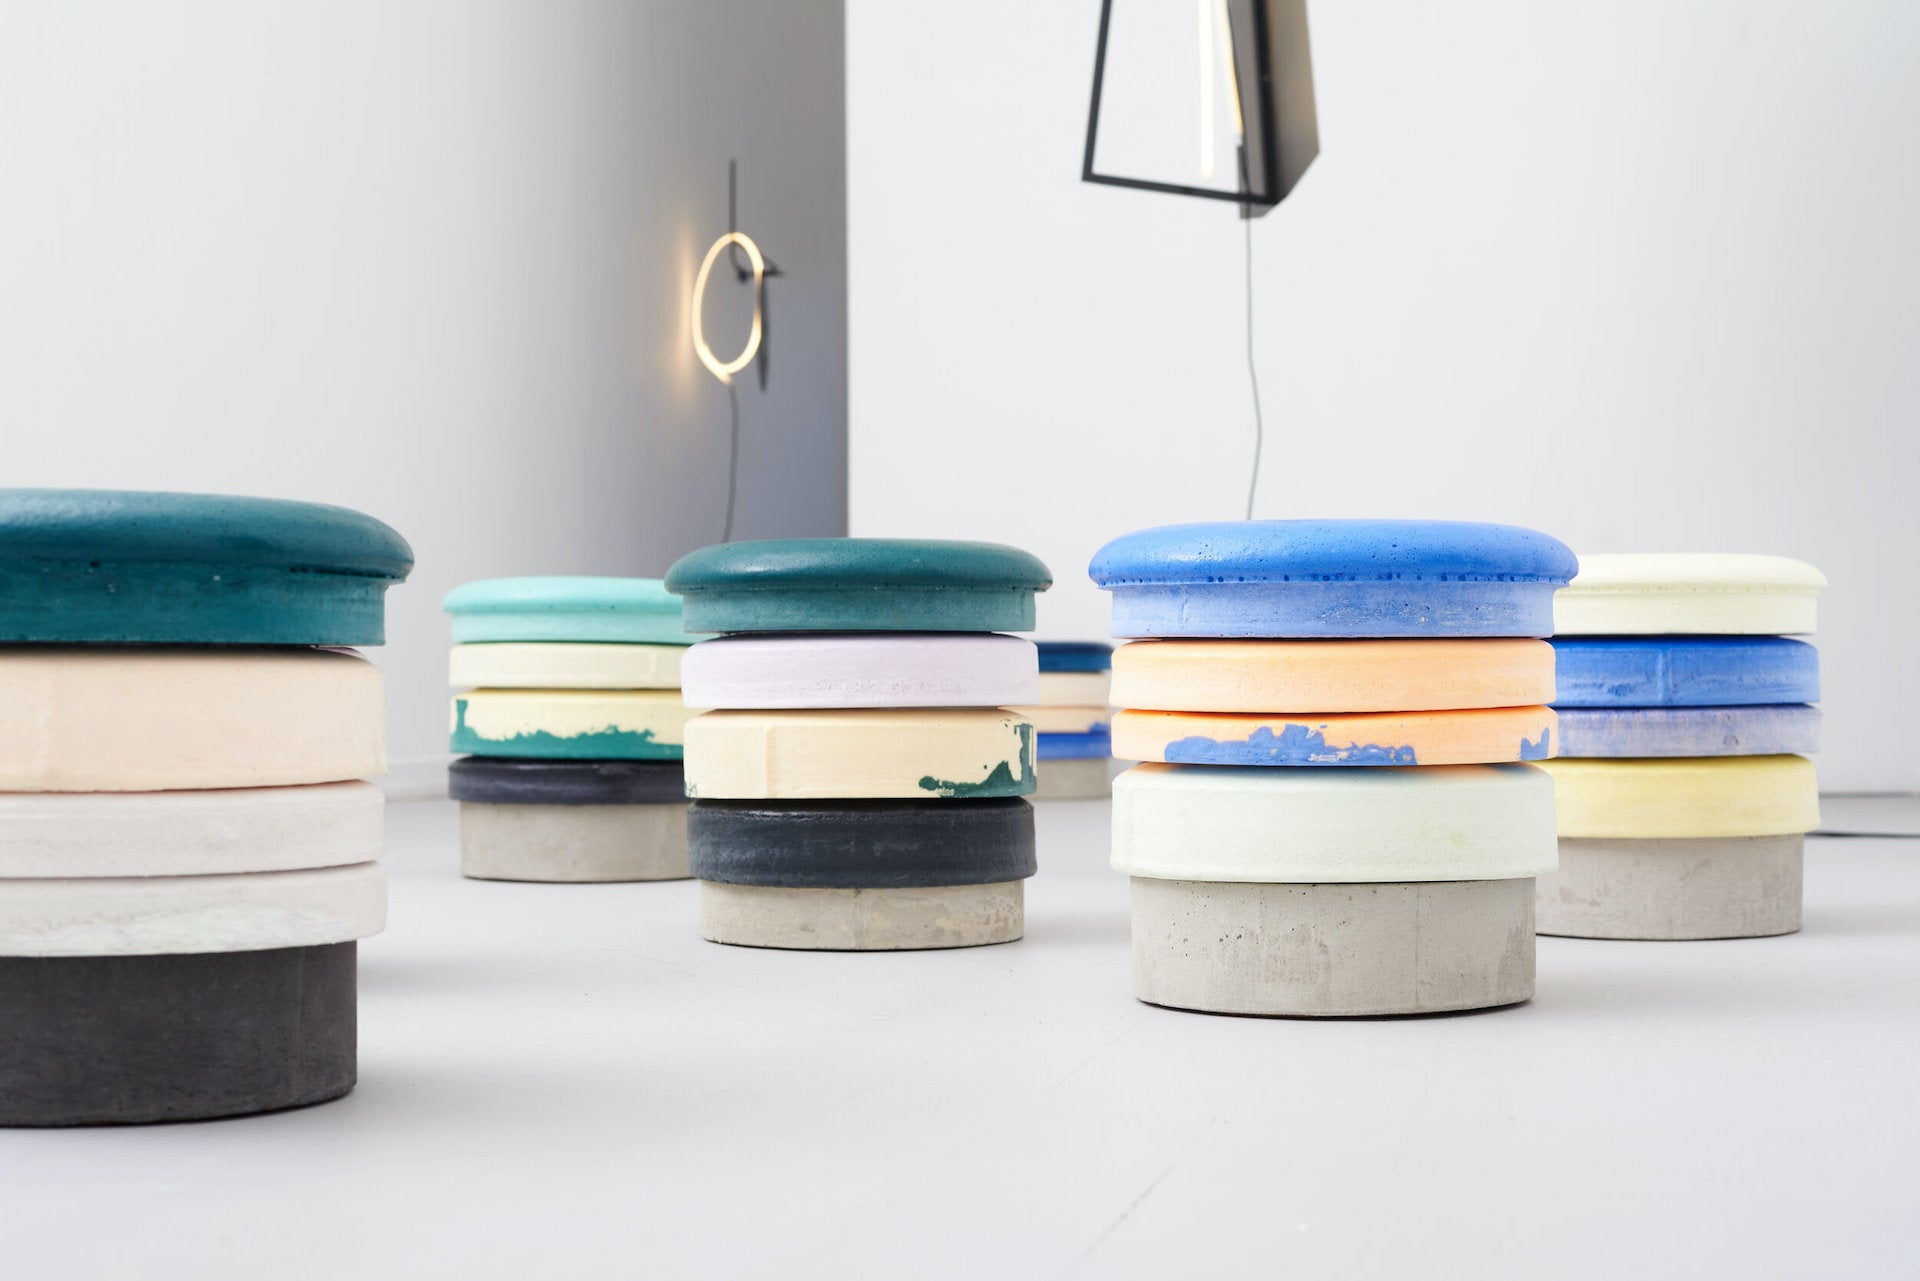 Macaron Stools by Cristian Andersen, 2020. Photo © Etage Projects